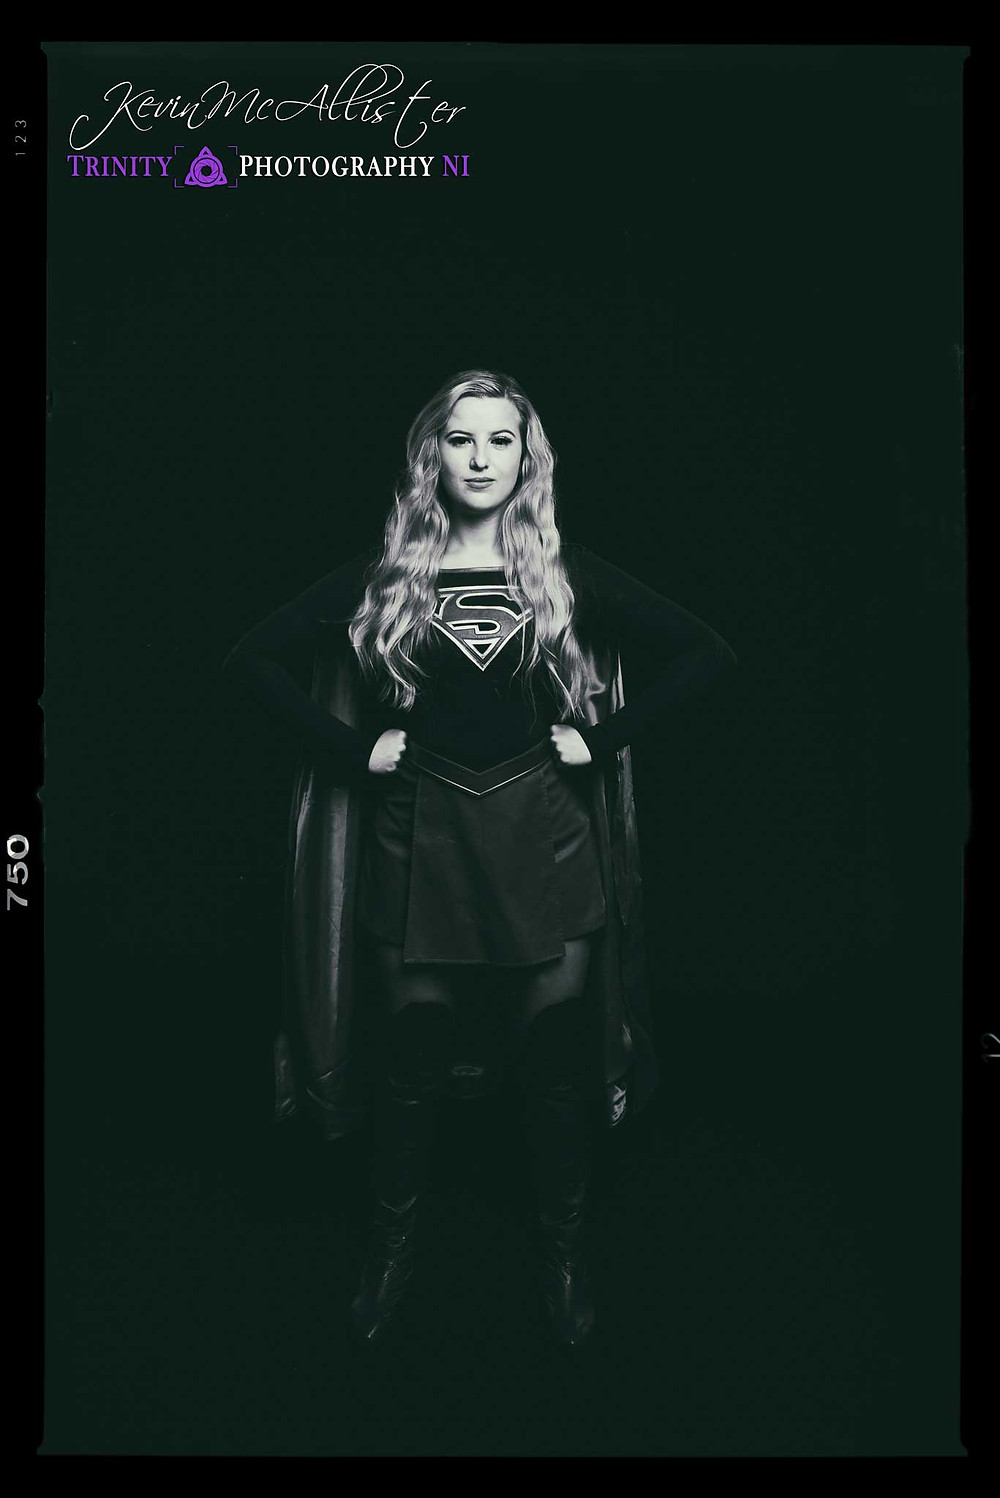 black and white image of supergirl standing pose